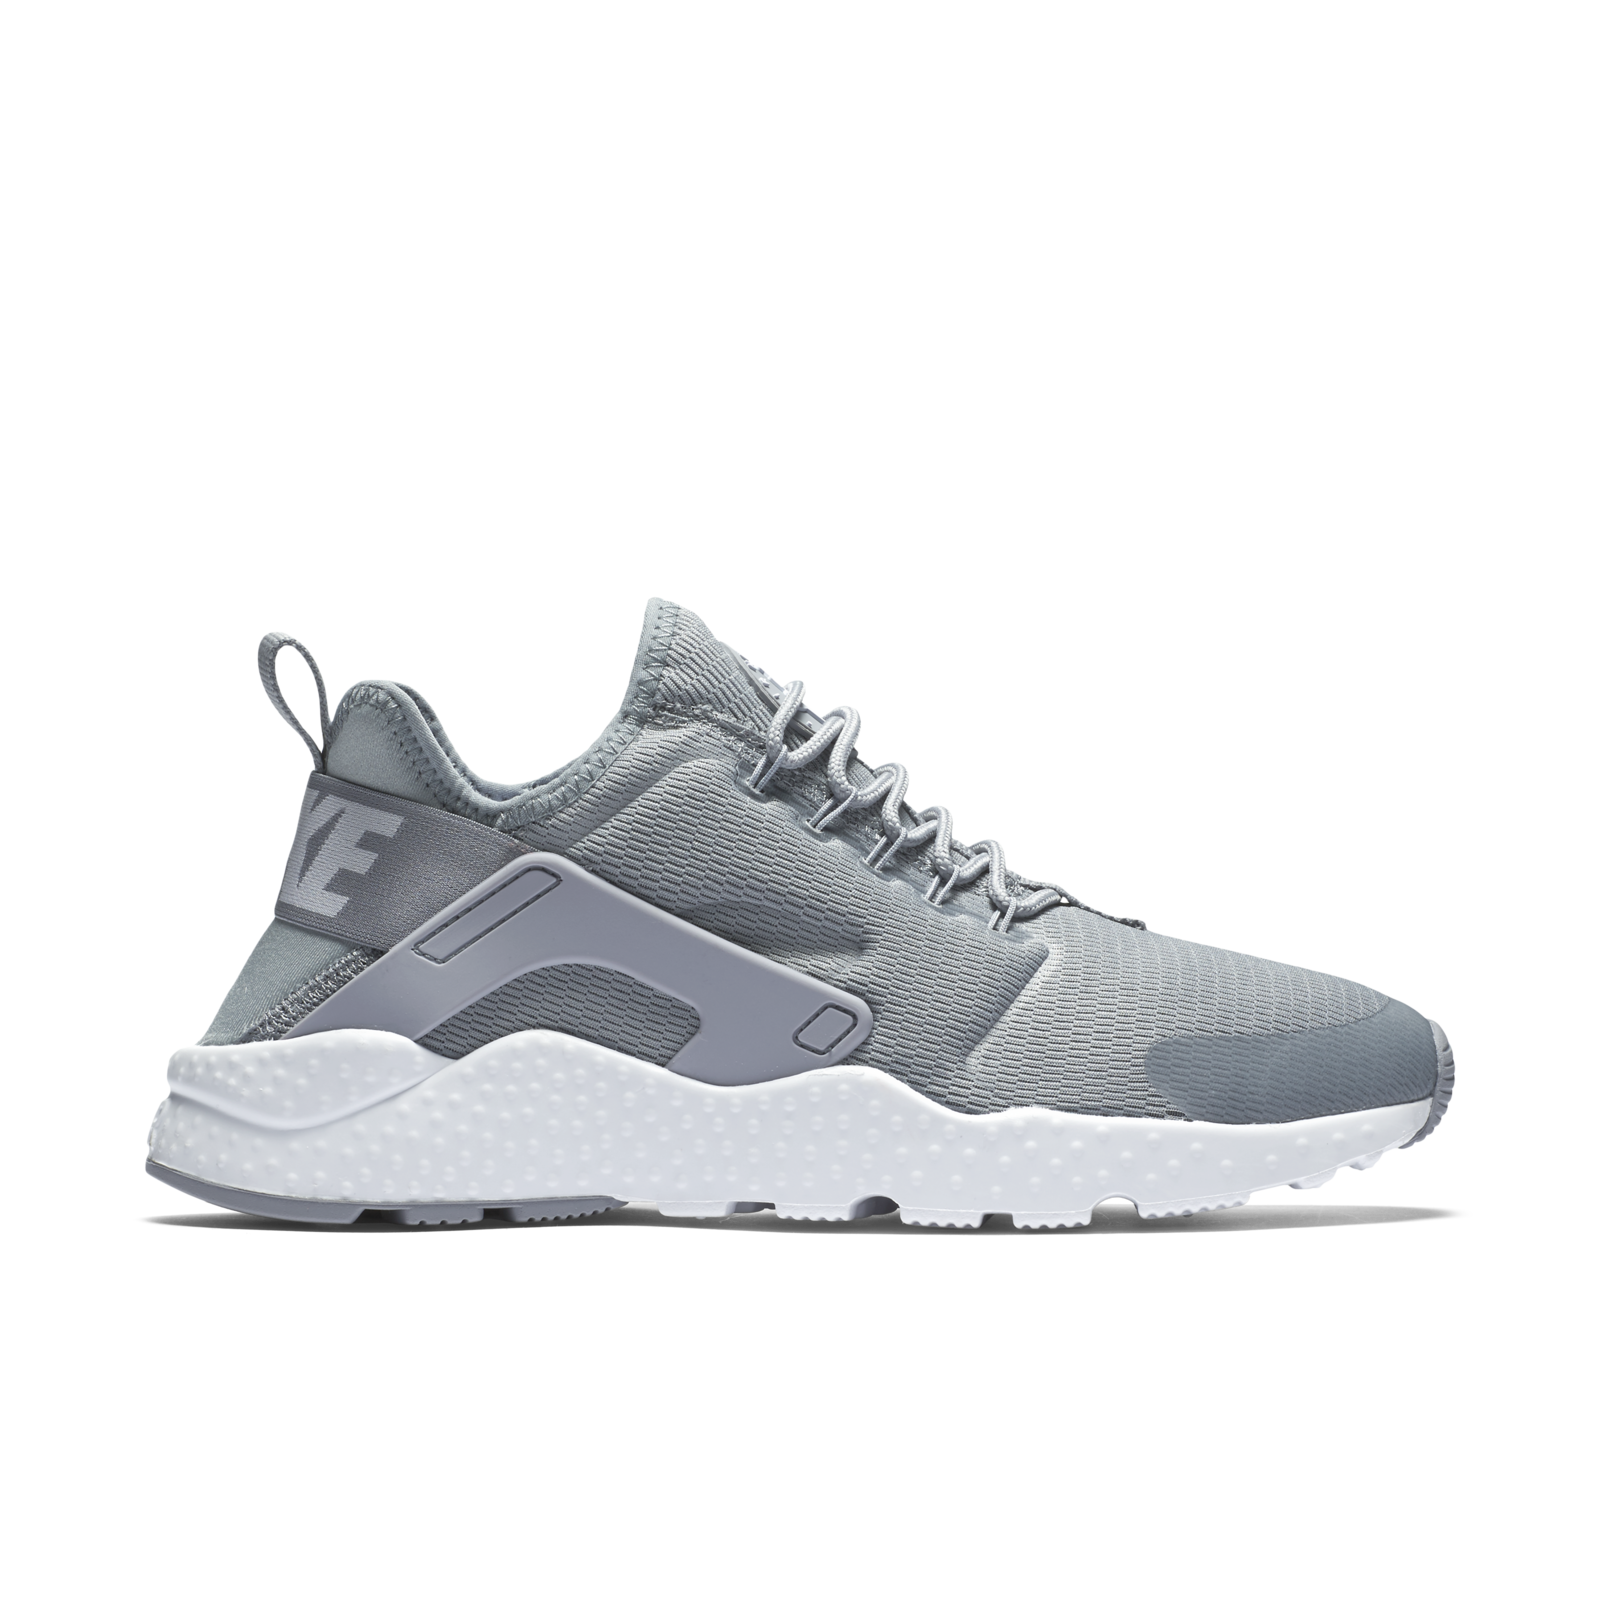 best loved 8f26e 327d7 Less Is More The Air Huarache Ultra - Nike News